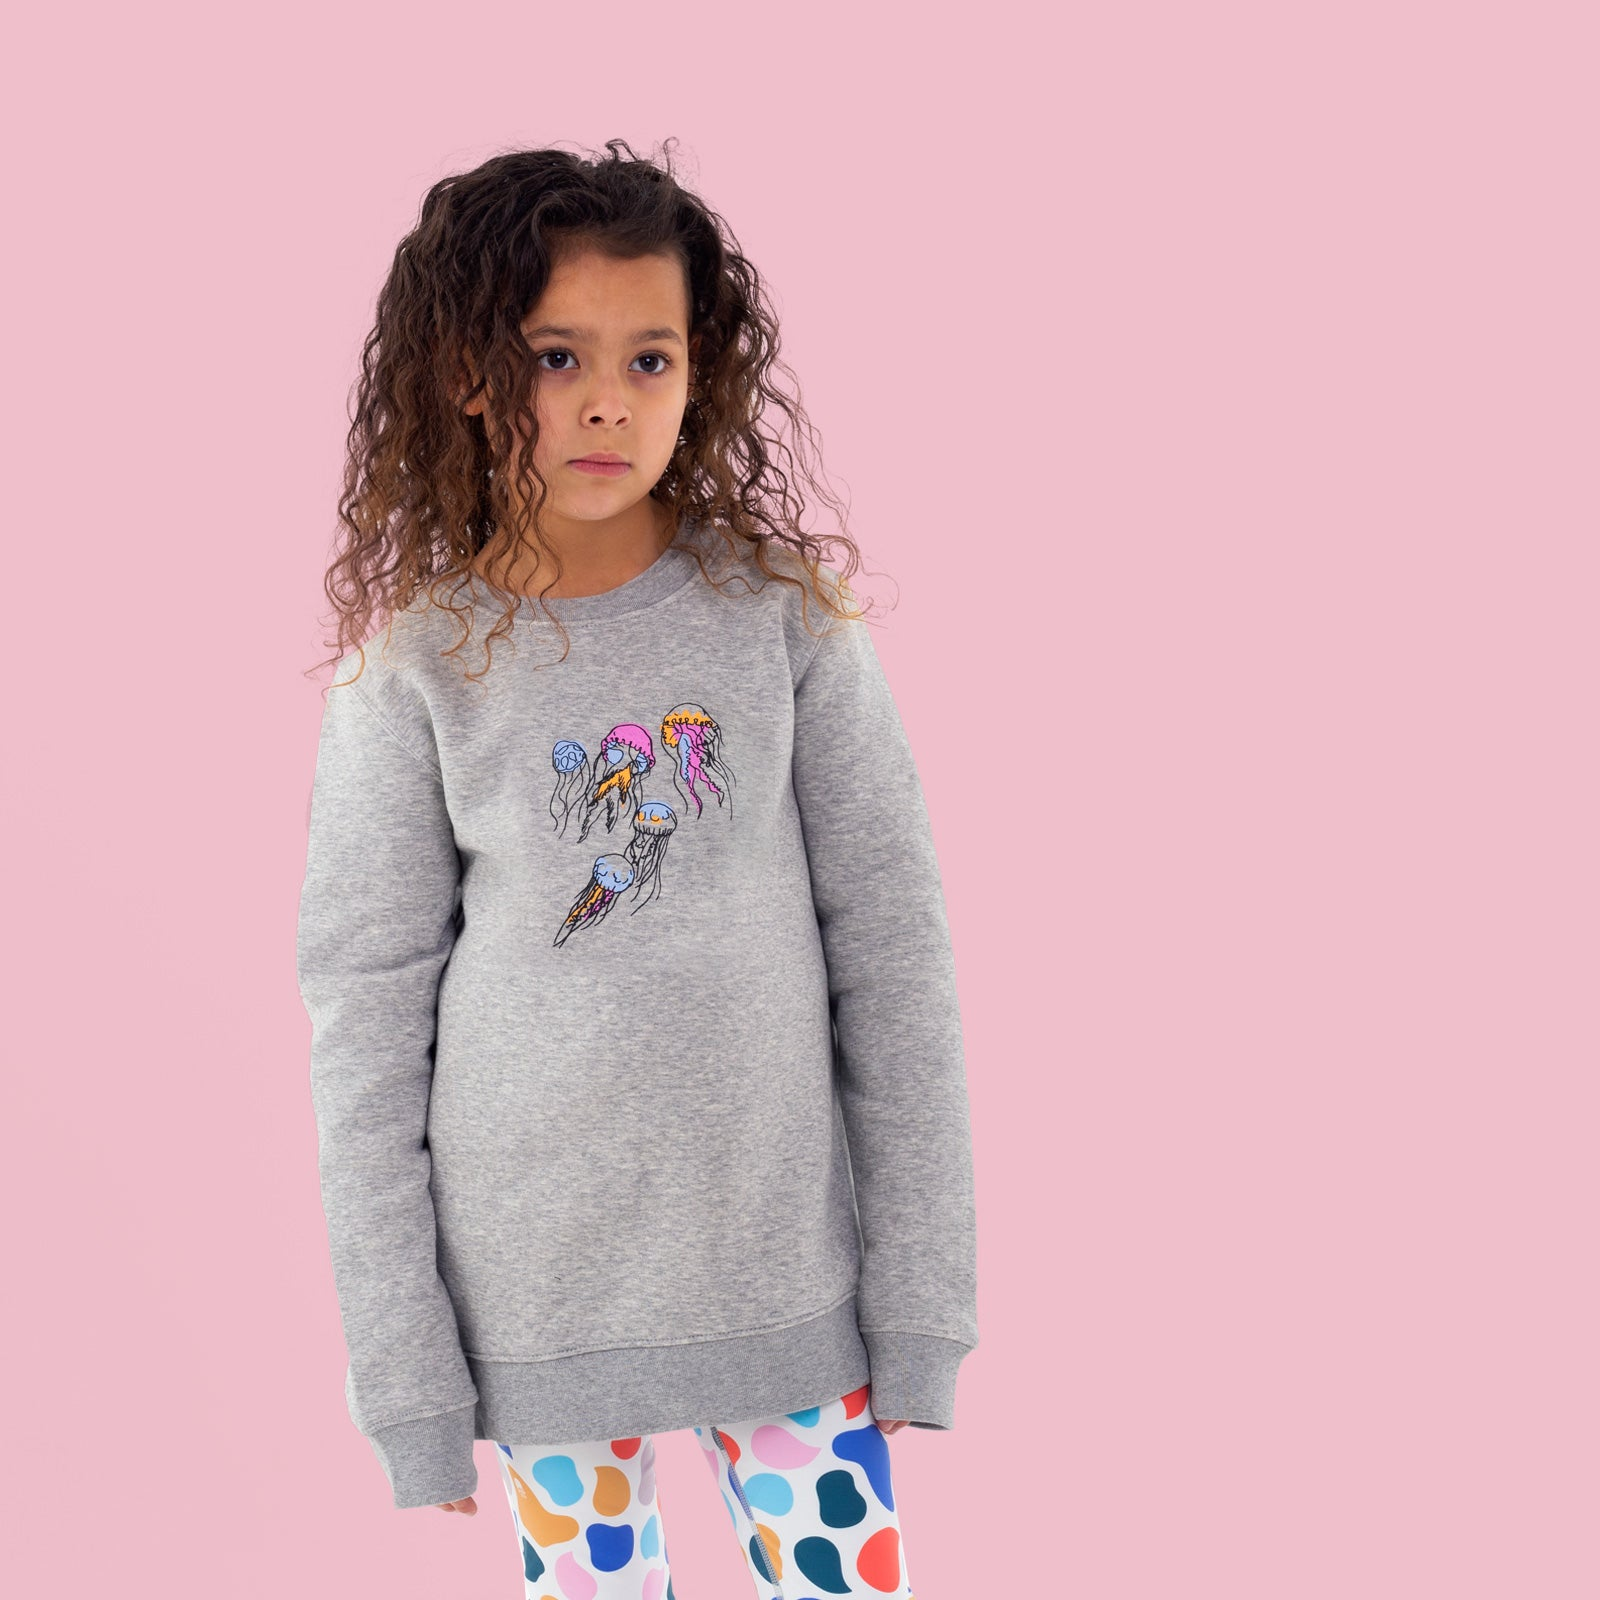 Jellyfish Jumper in Grey from Reins Clothing